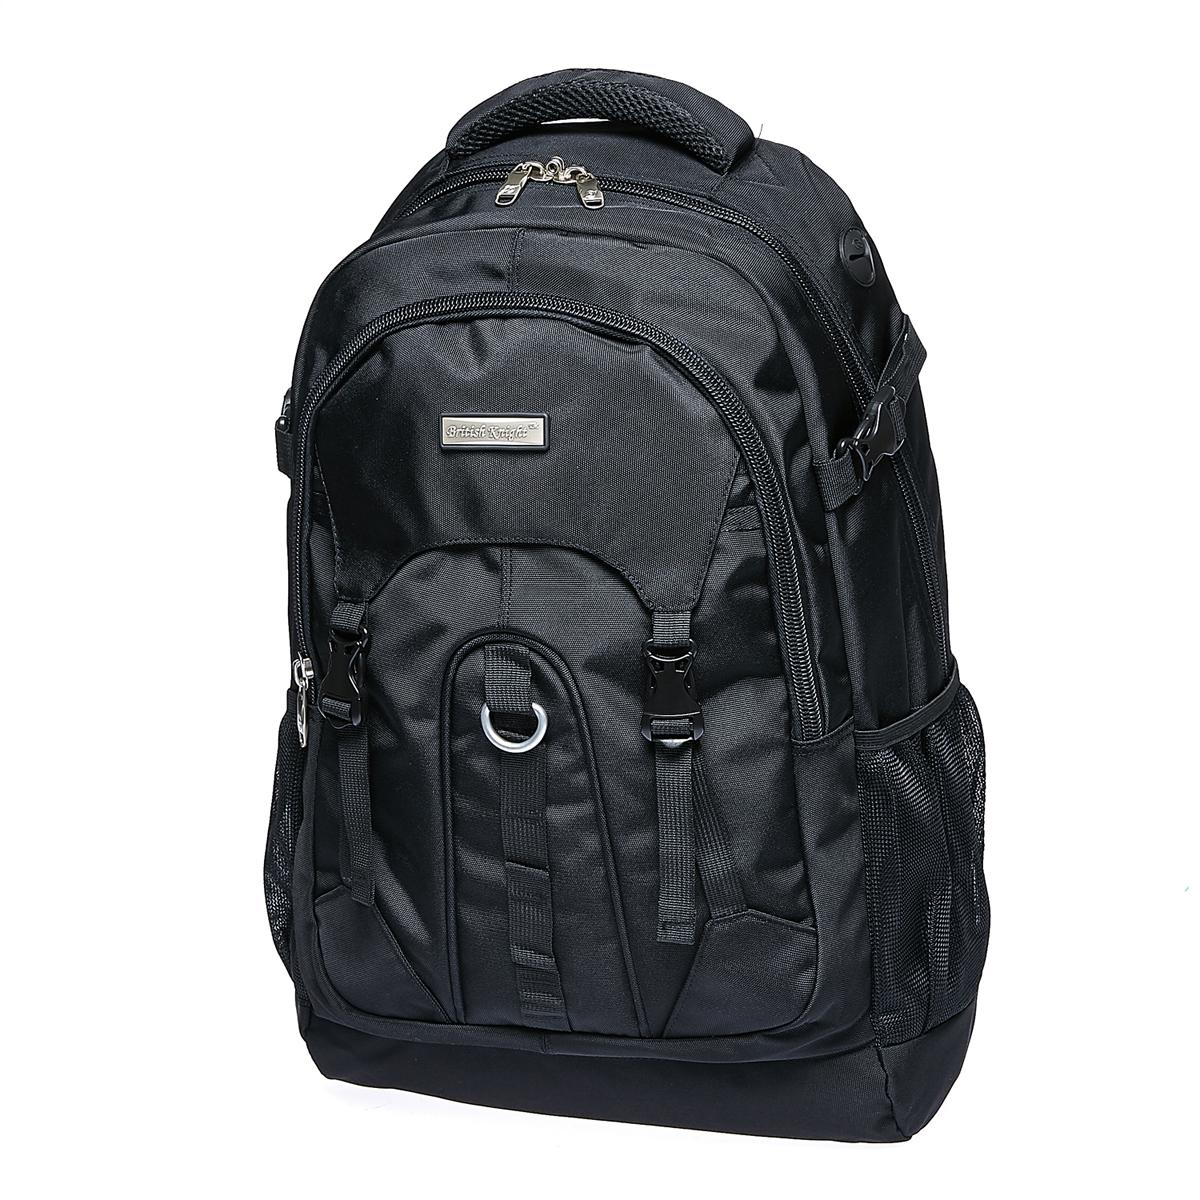 fee575bd168 Travel Bag for sale - Travel Luggage online brands, prices   reviews ...